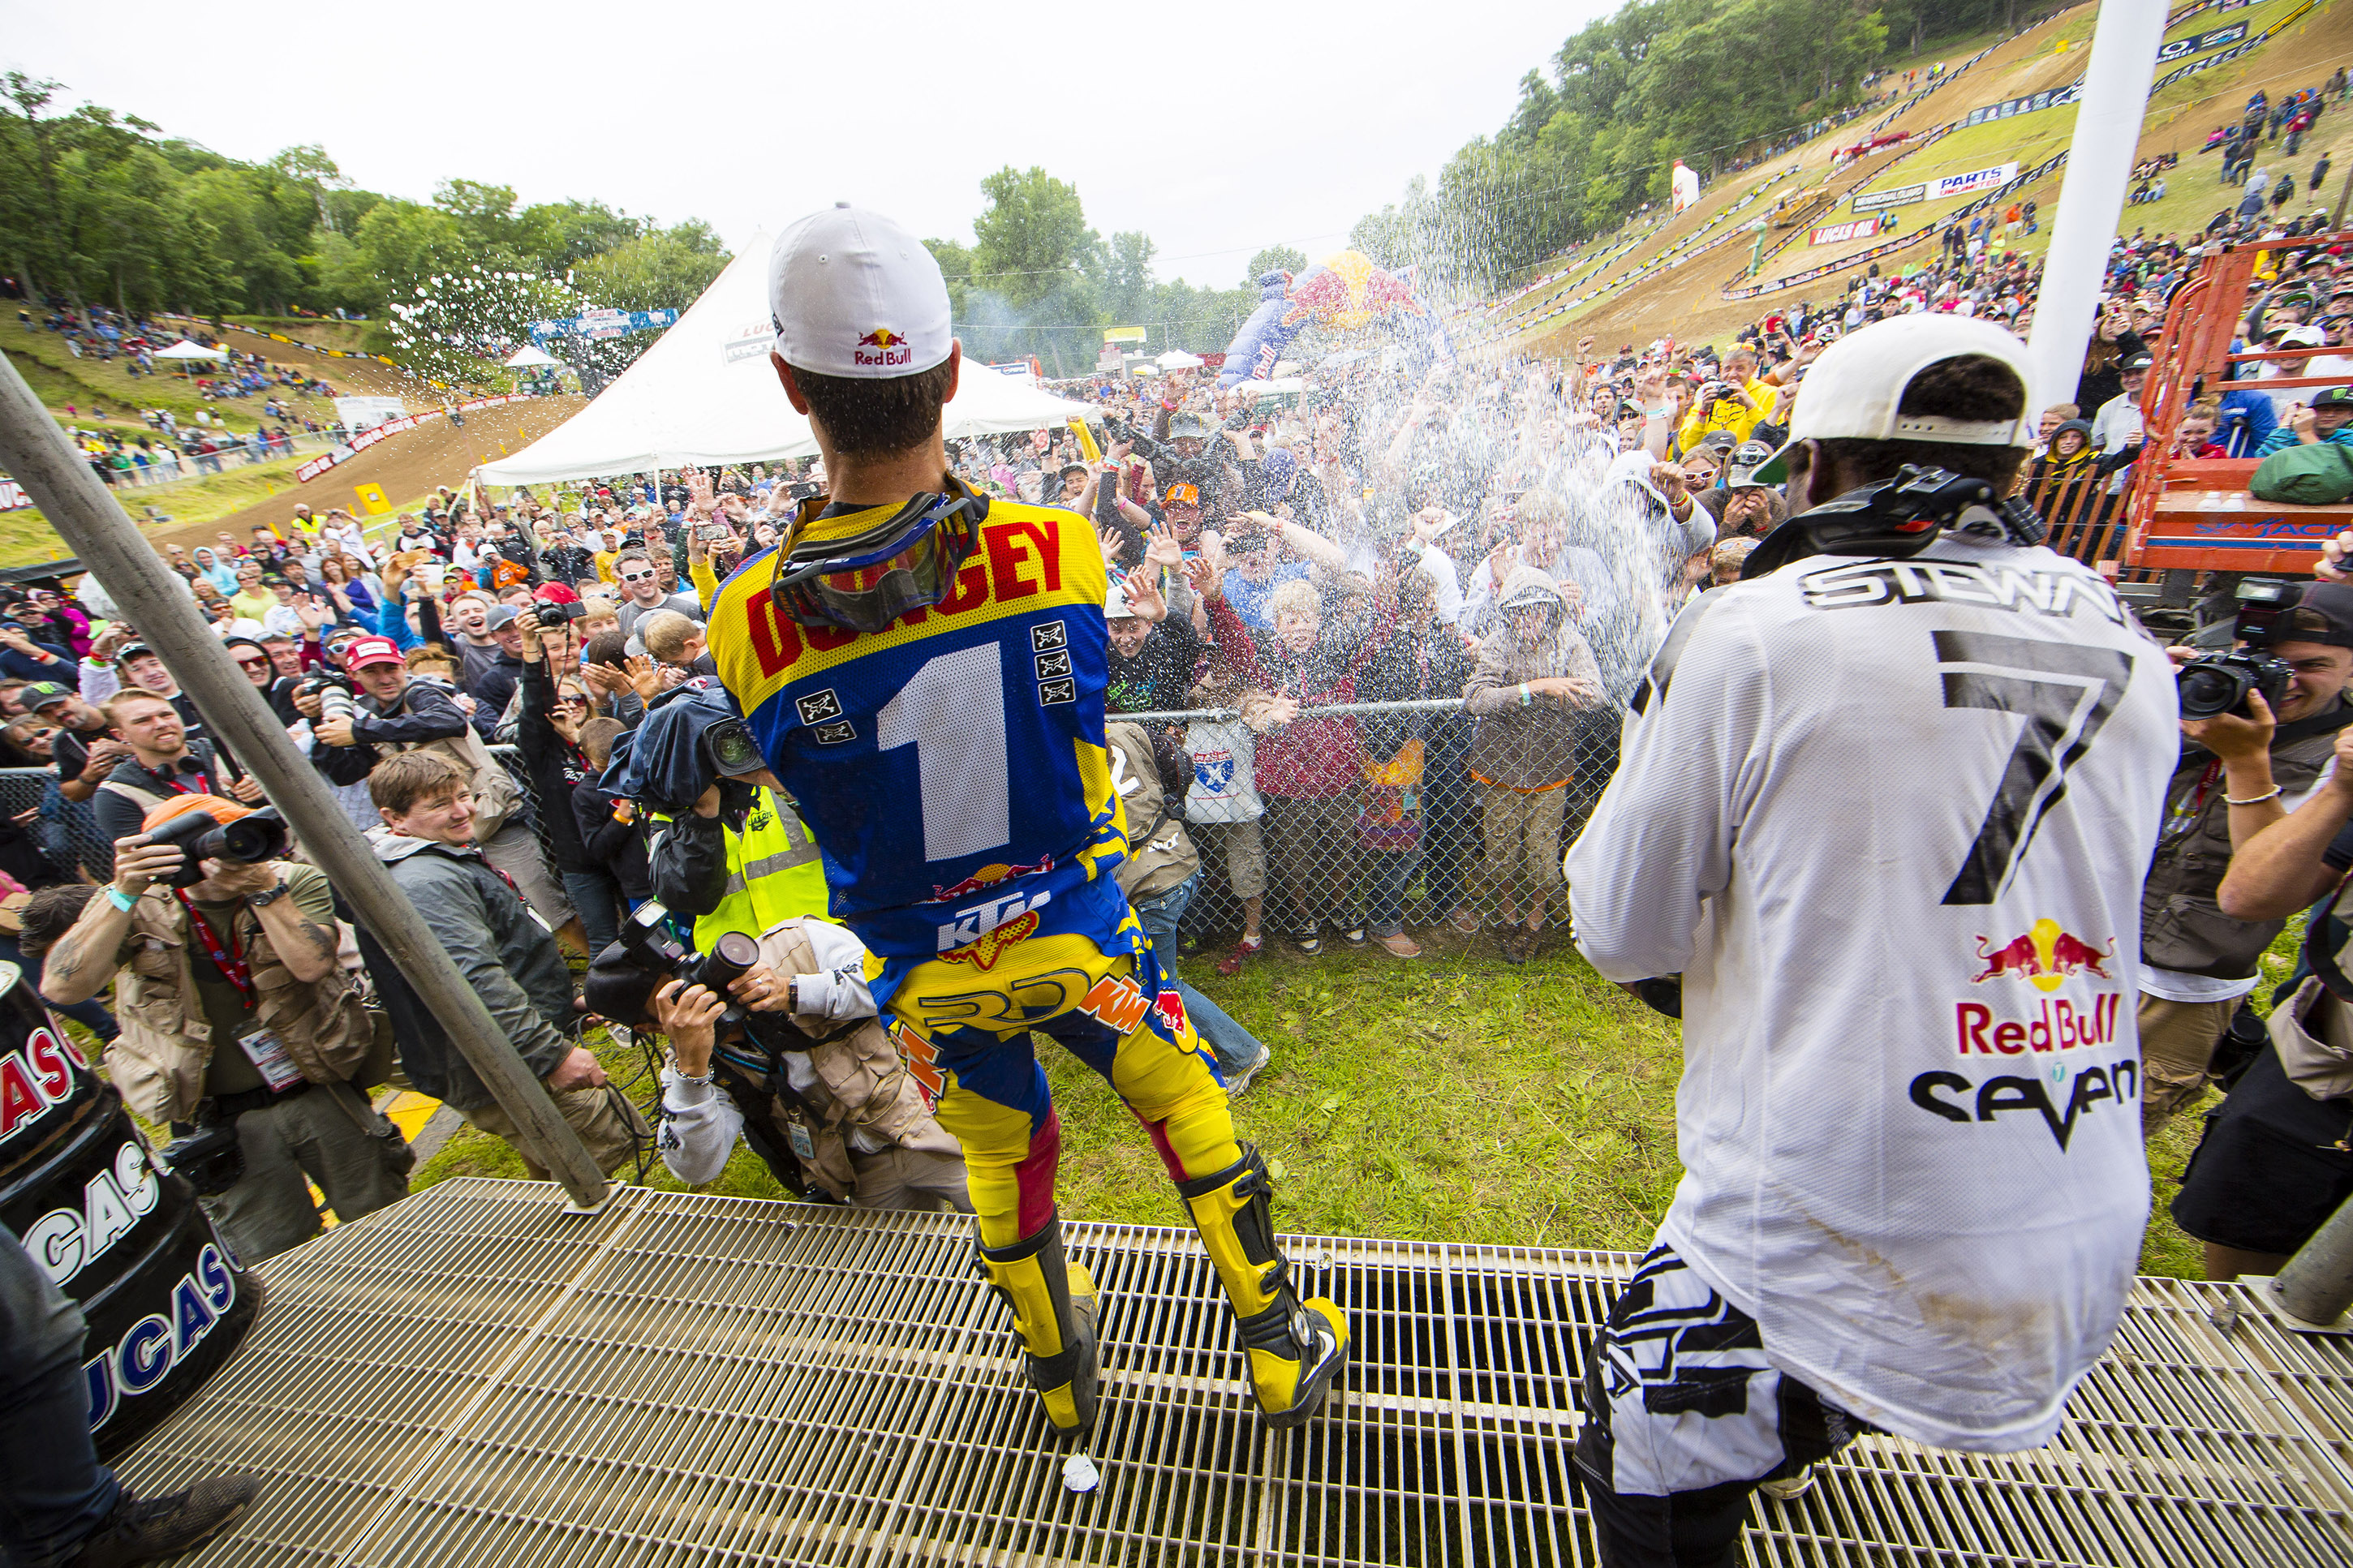 (L-R) Ryan Dungey and James Stewart celebrate at the Lucas Oil AMA Pro Motocross Championship at Spring Creek MX in Millville, Minnesota, USA on 27 July, 2013. // Garth Milan/Red Bull Content Pool // P-20130729-00275 // Usage for editorial use only // Please go to www.redbullcontentpool.com for further information. //